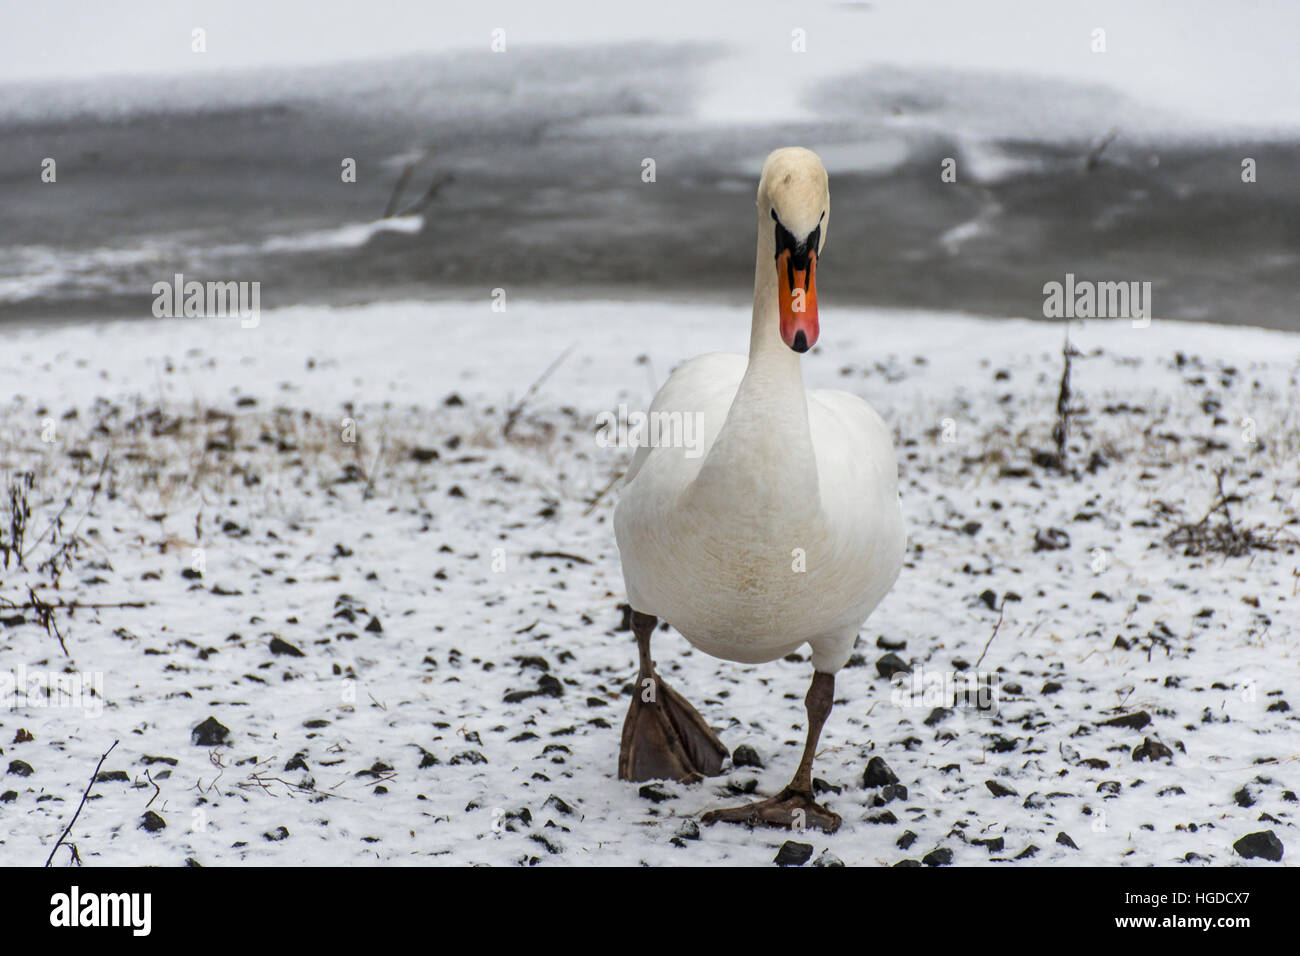 Winter Wonder Land Snow white swan Bird walking close to ice lake 2 - Stock Image